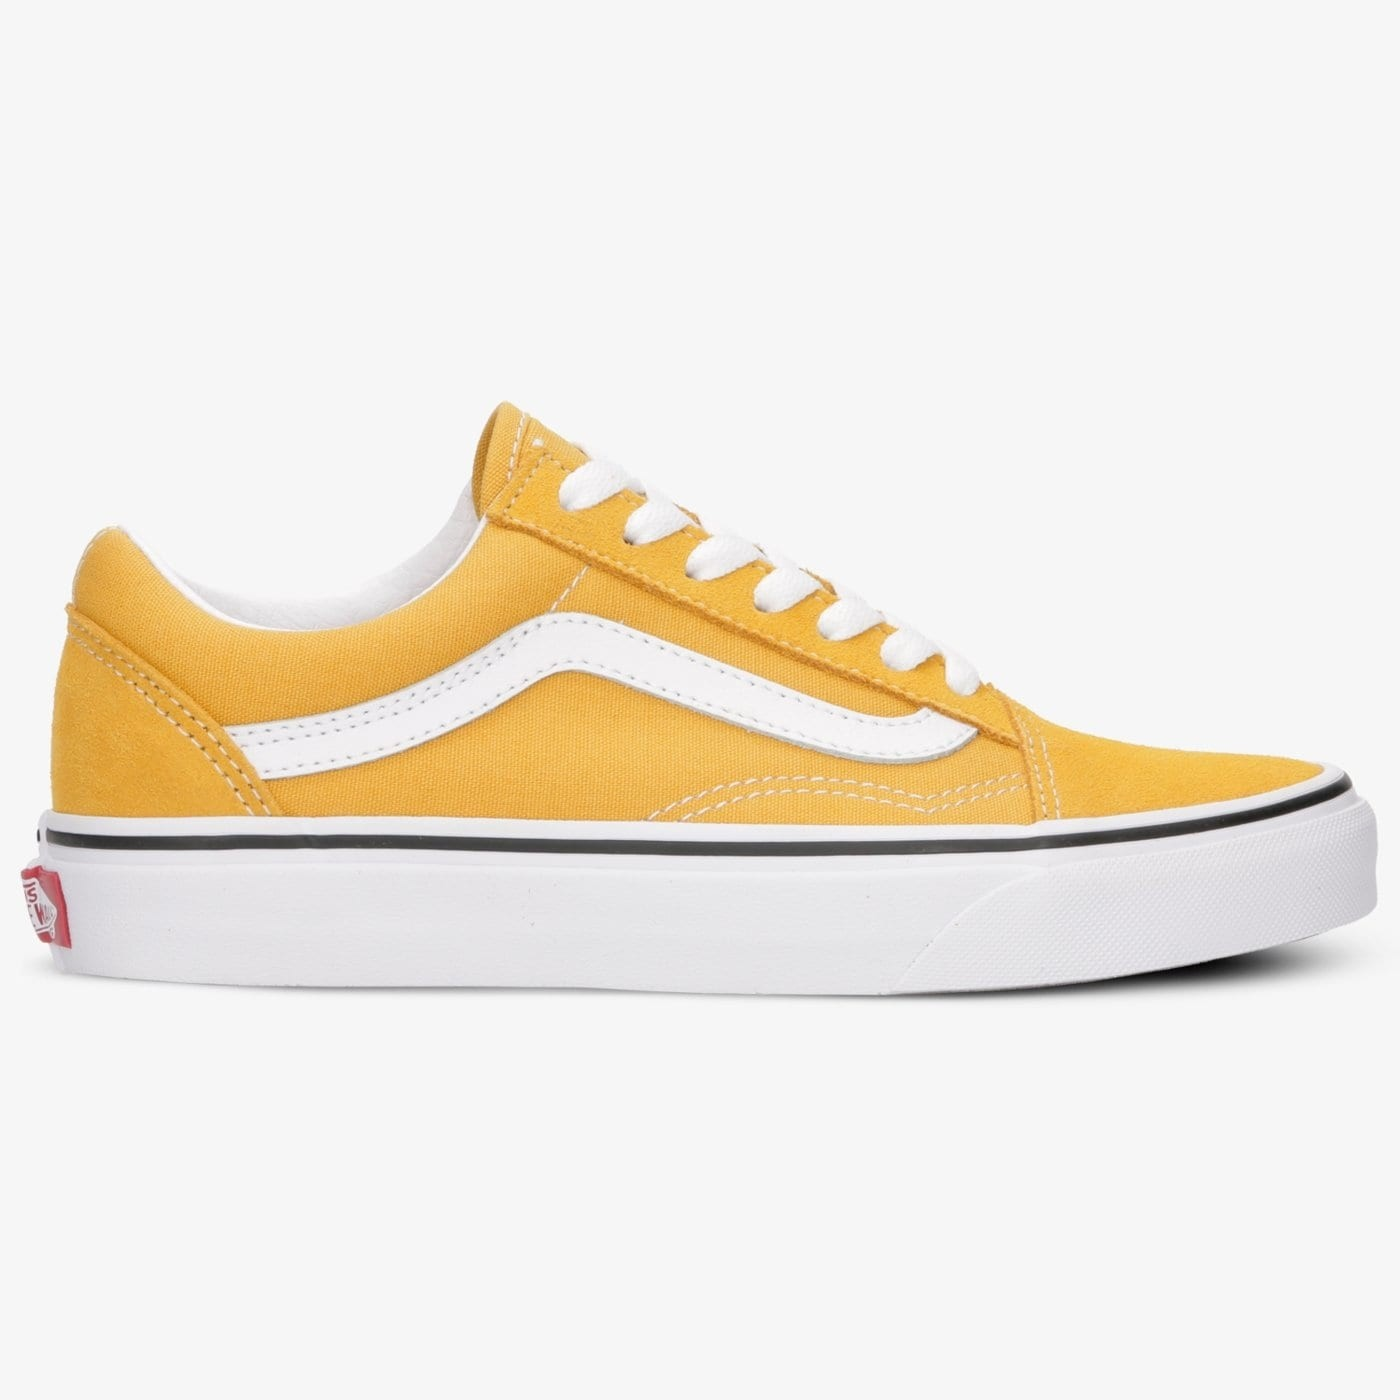 de91b09a57 Vans UA Old Skool YOLK YELLOW TRU